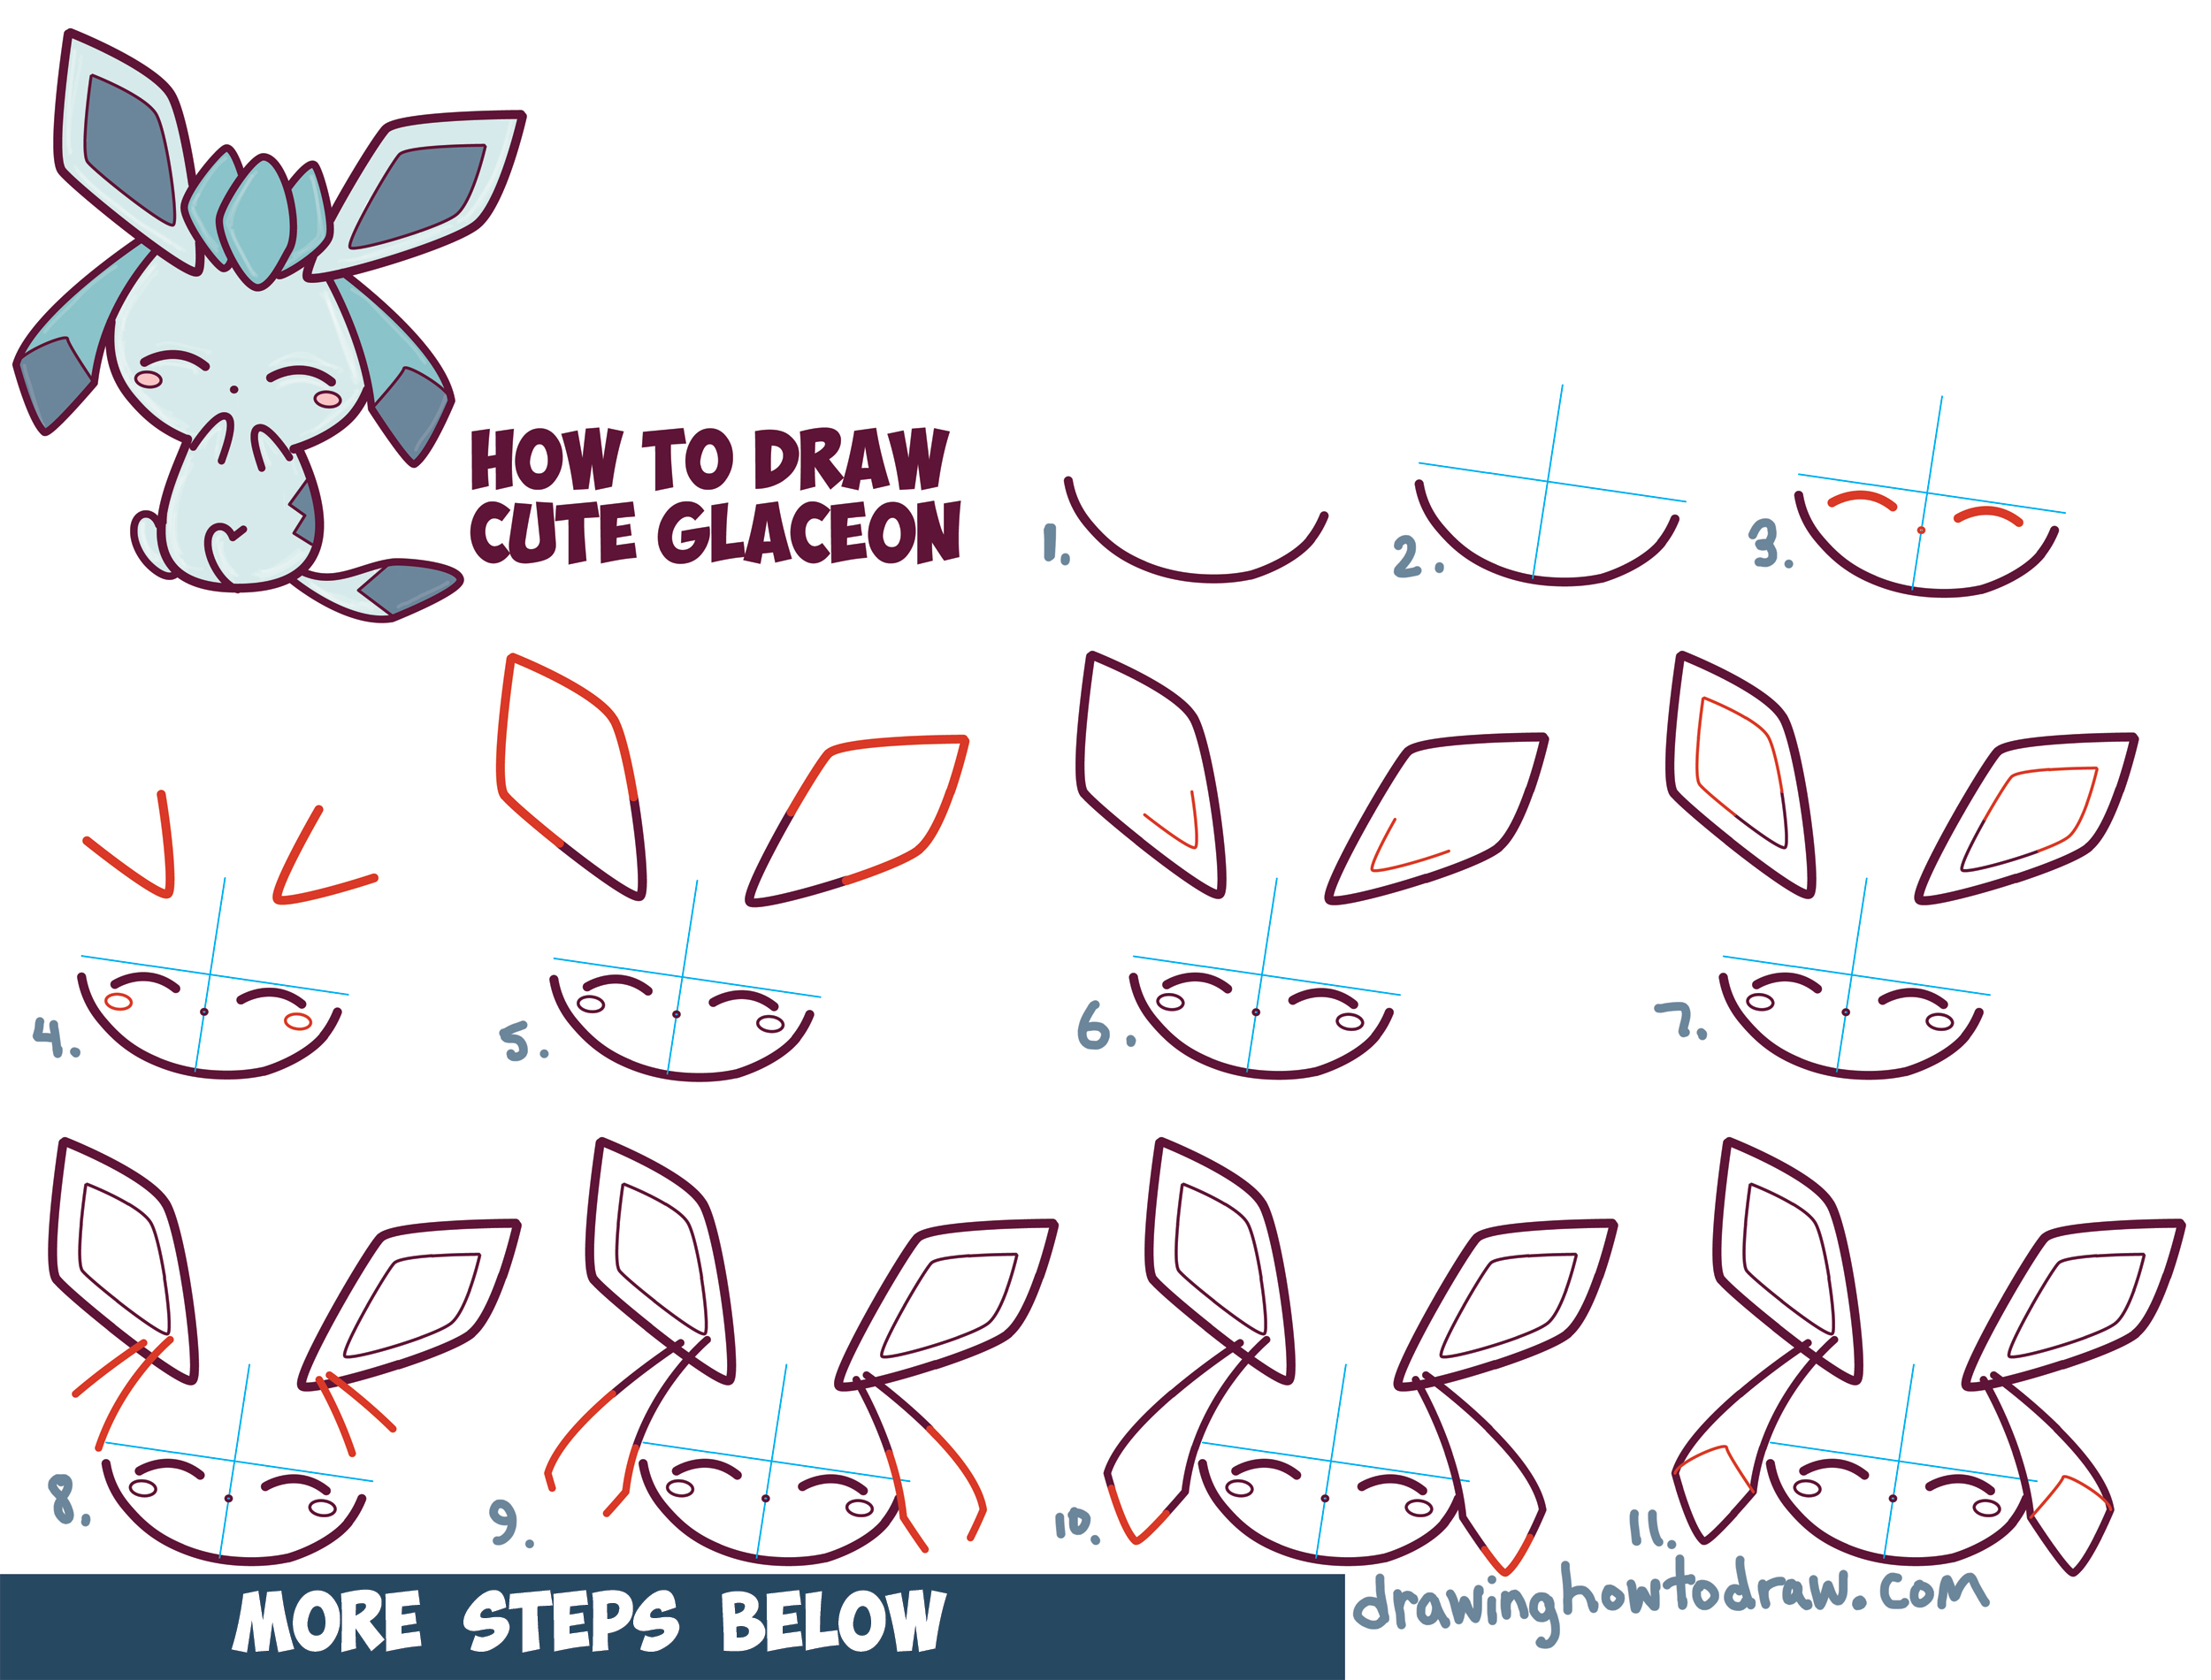 Pokemon glaceon cute images pokemon images for Step by step art for beginners